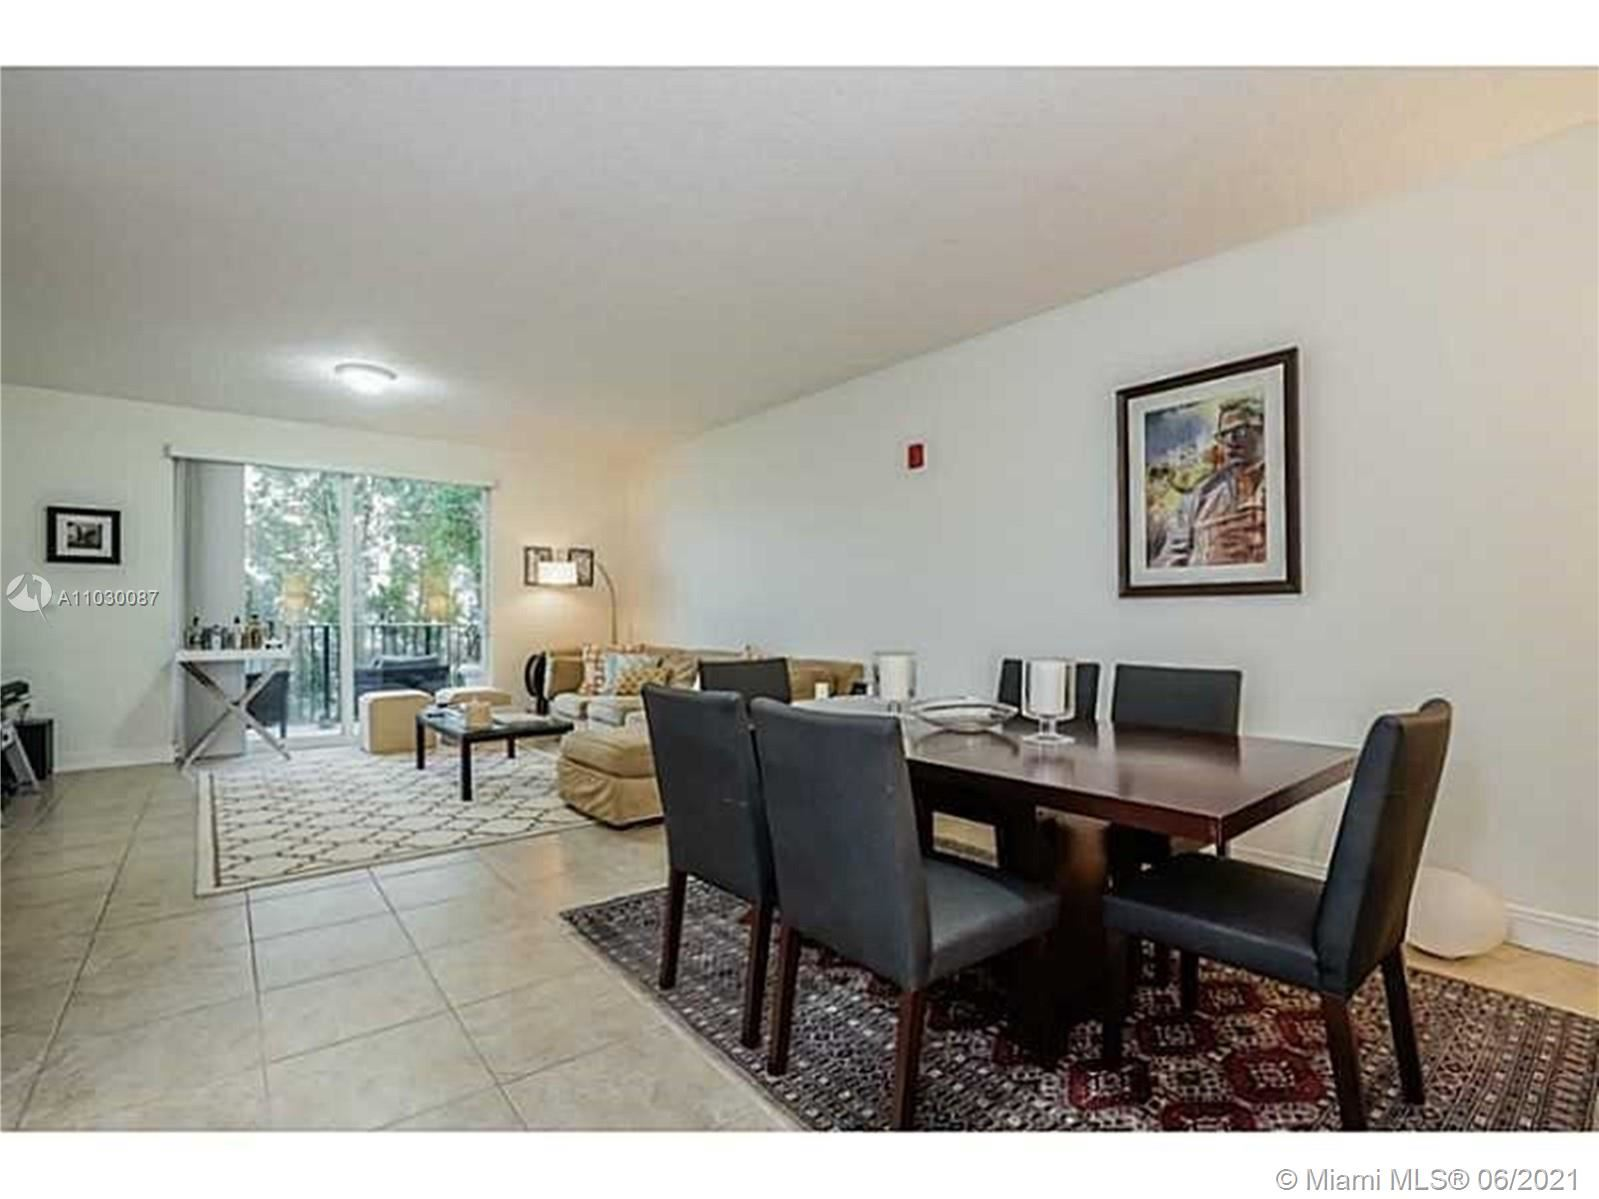 Photo of 118 Zamora Ave #308, Coral Gables, FL 33134 (MLS # A11030087)